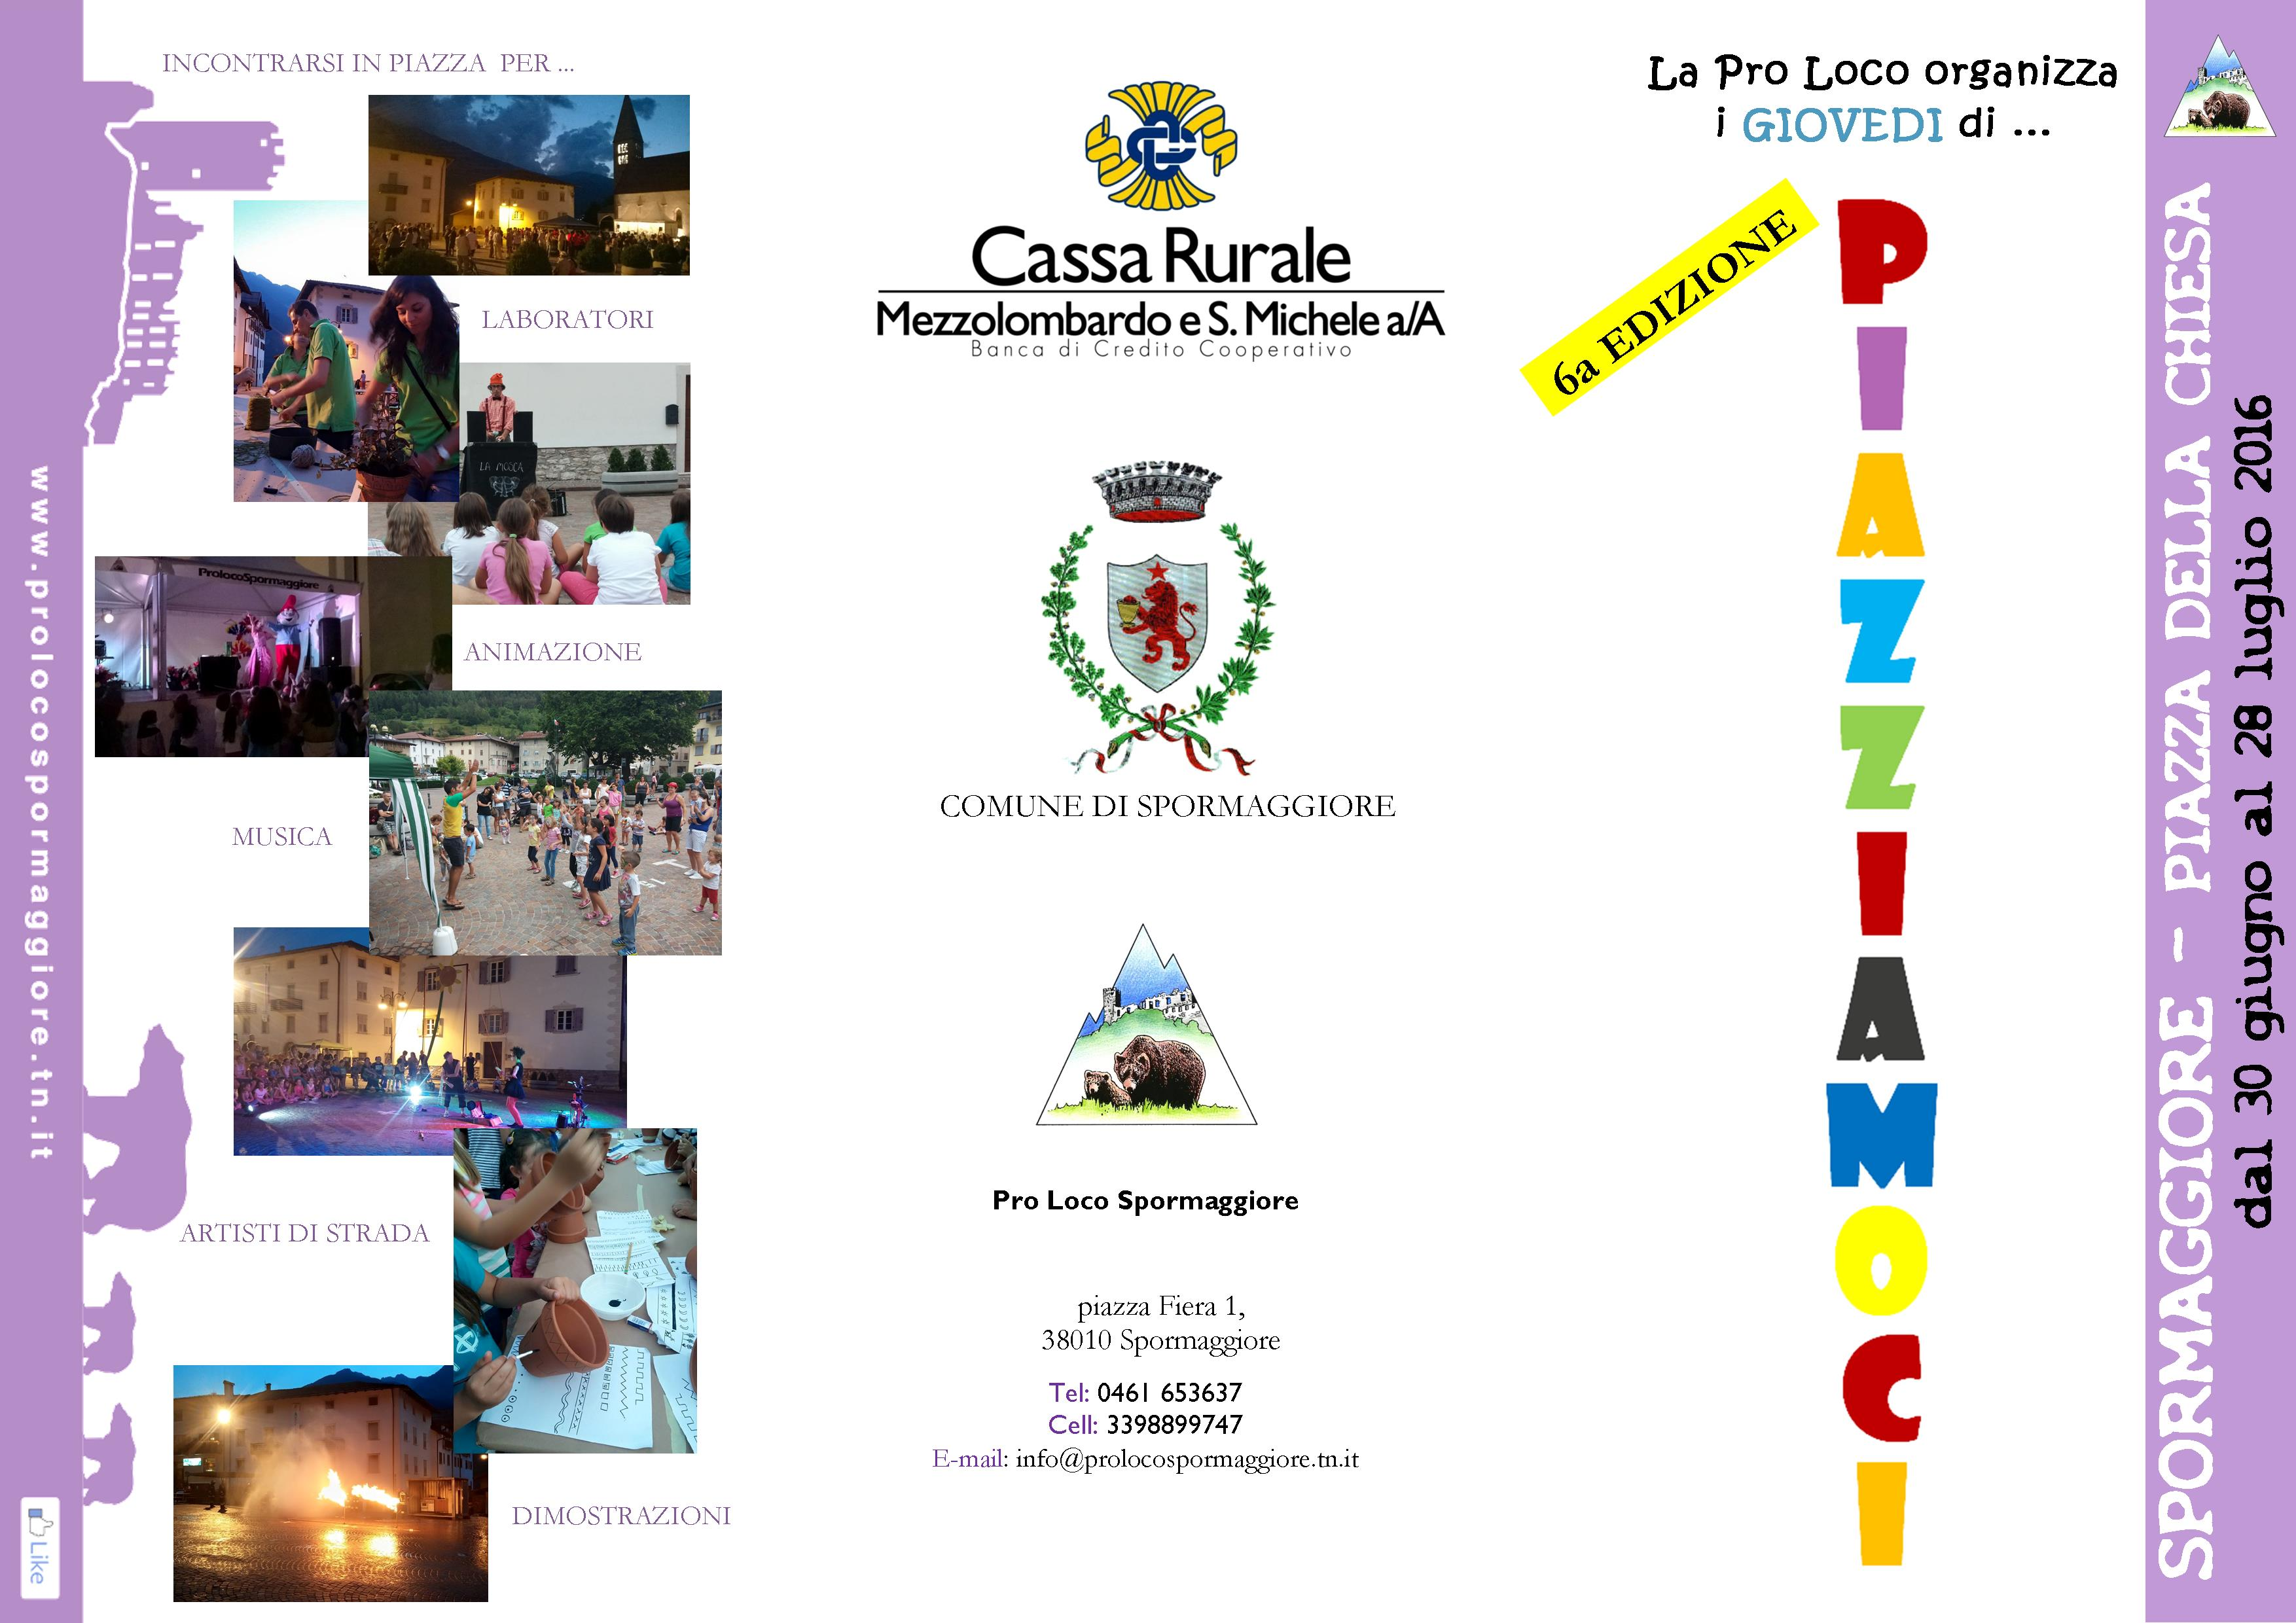 Piazziamoci2016 brochure front